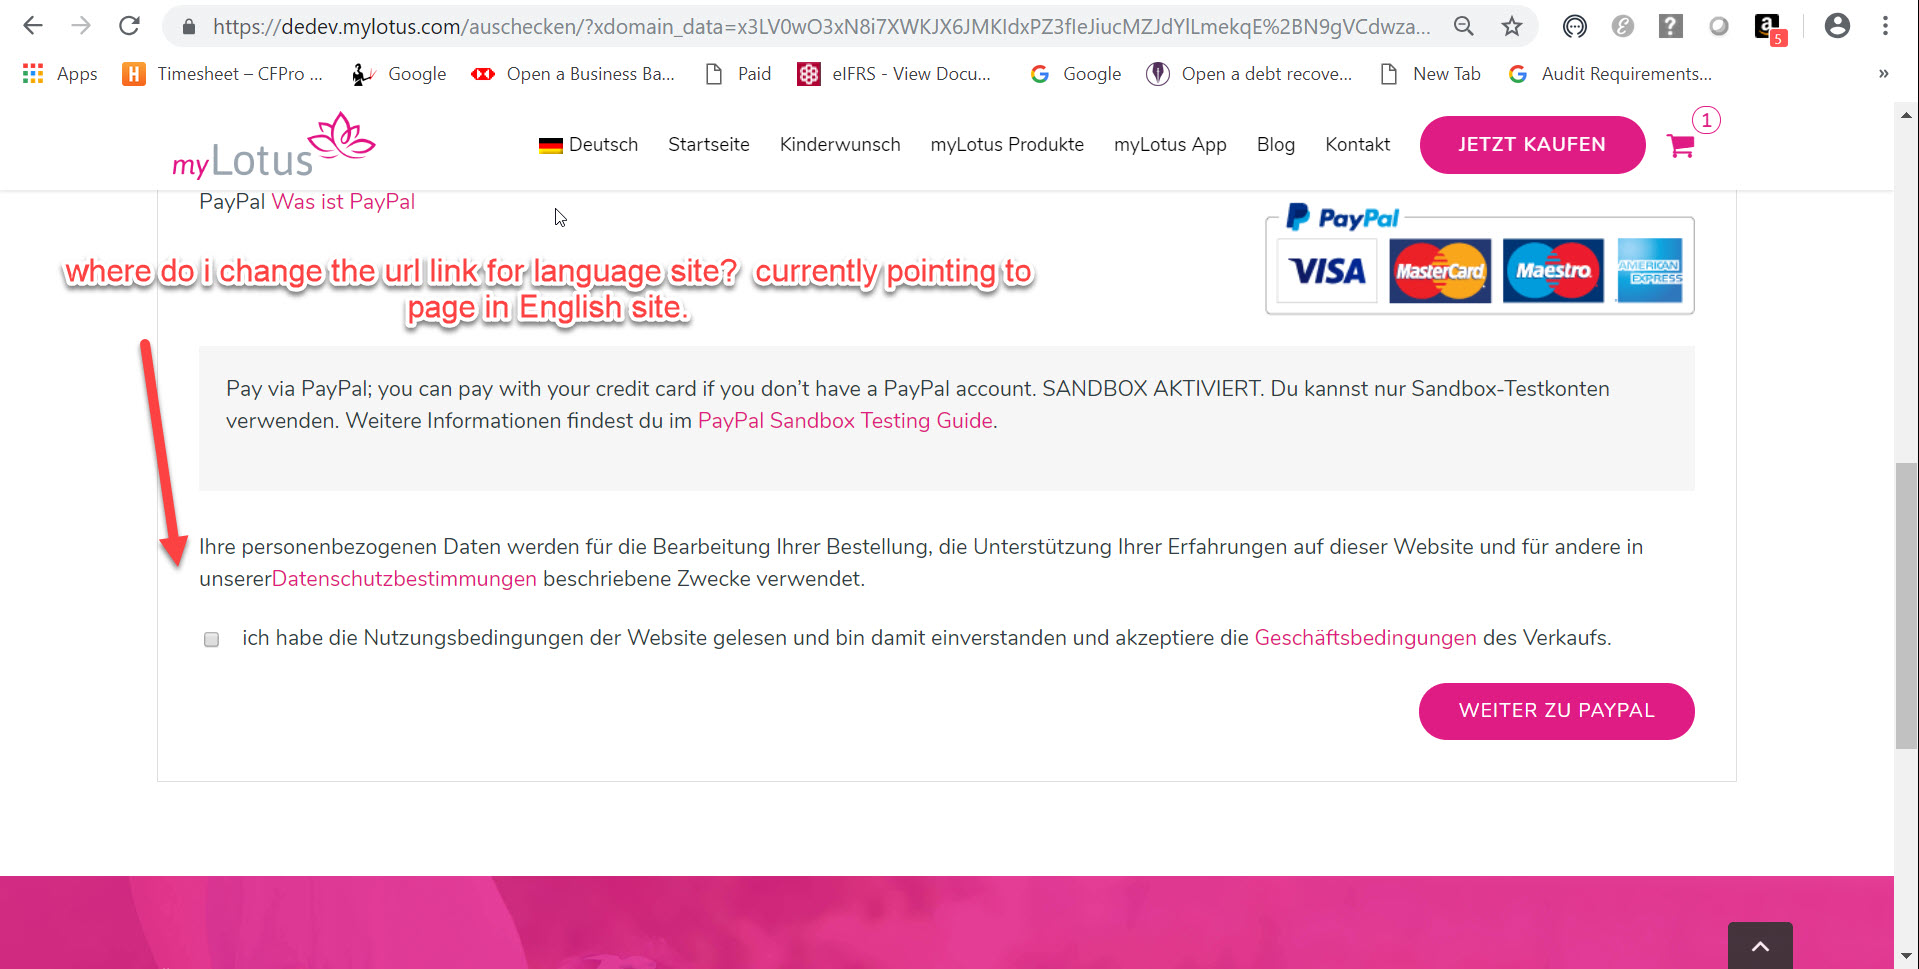 Checkout terms wrong url(German site 13mar19).jpg